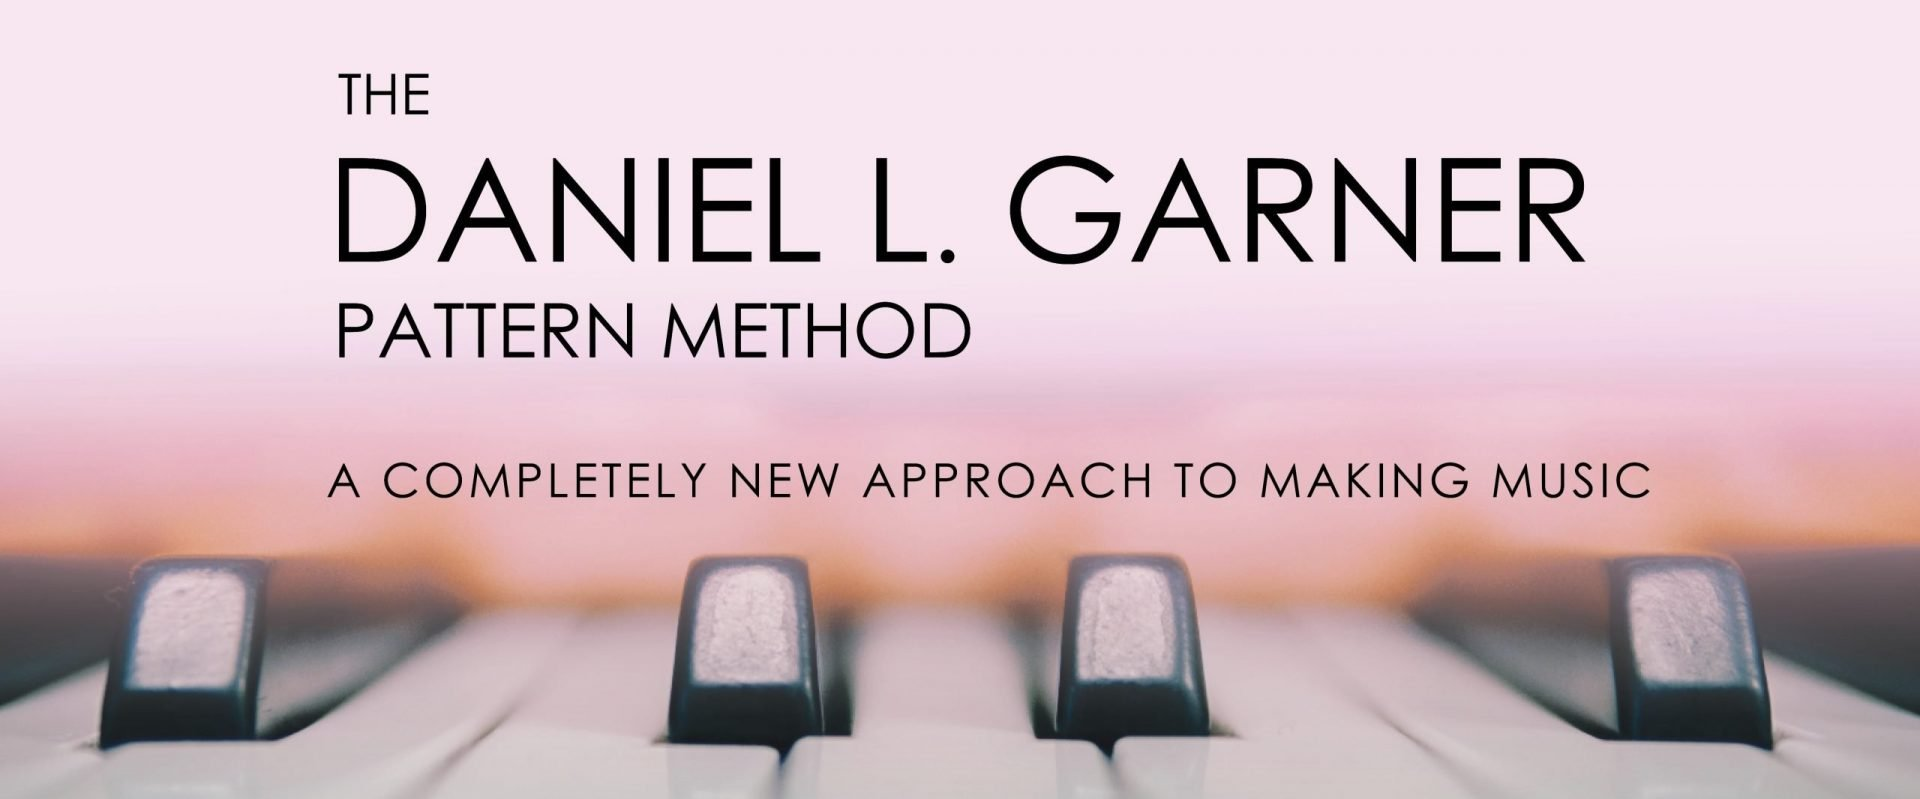 The Daniel L. Garner Pattern Method